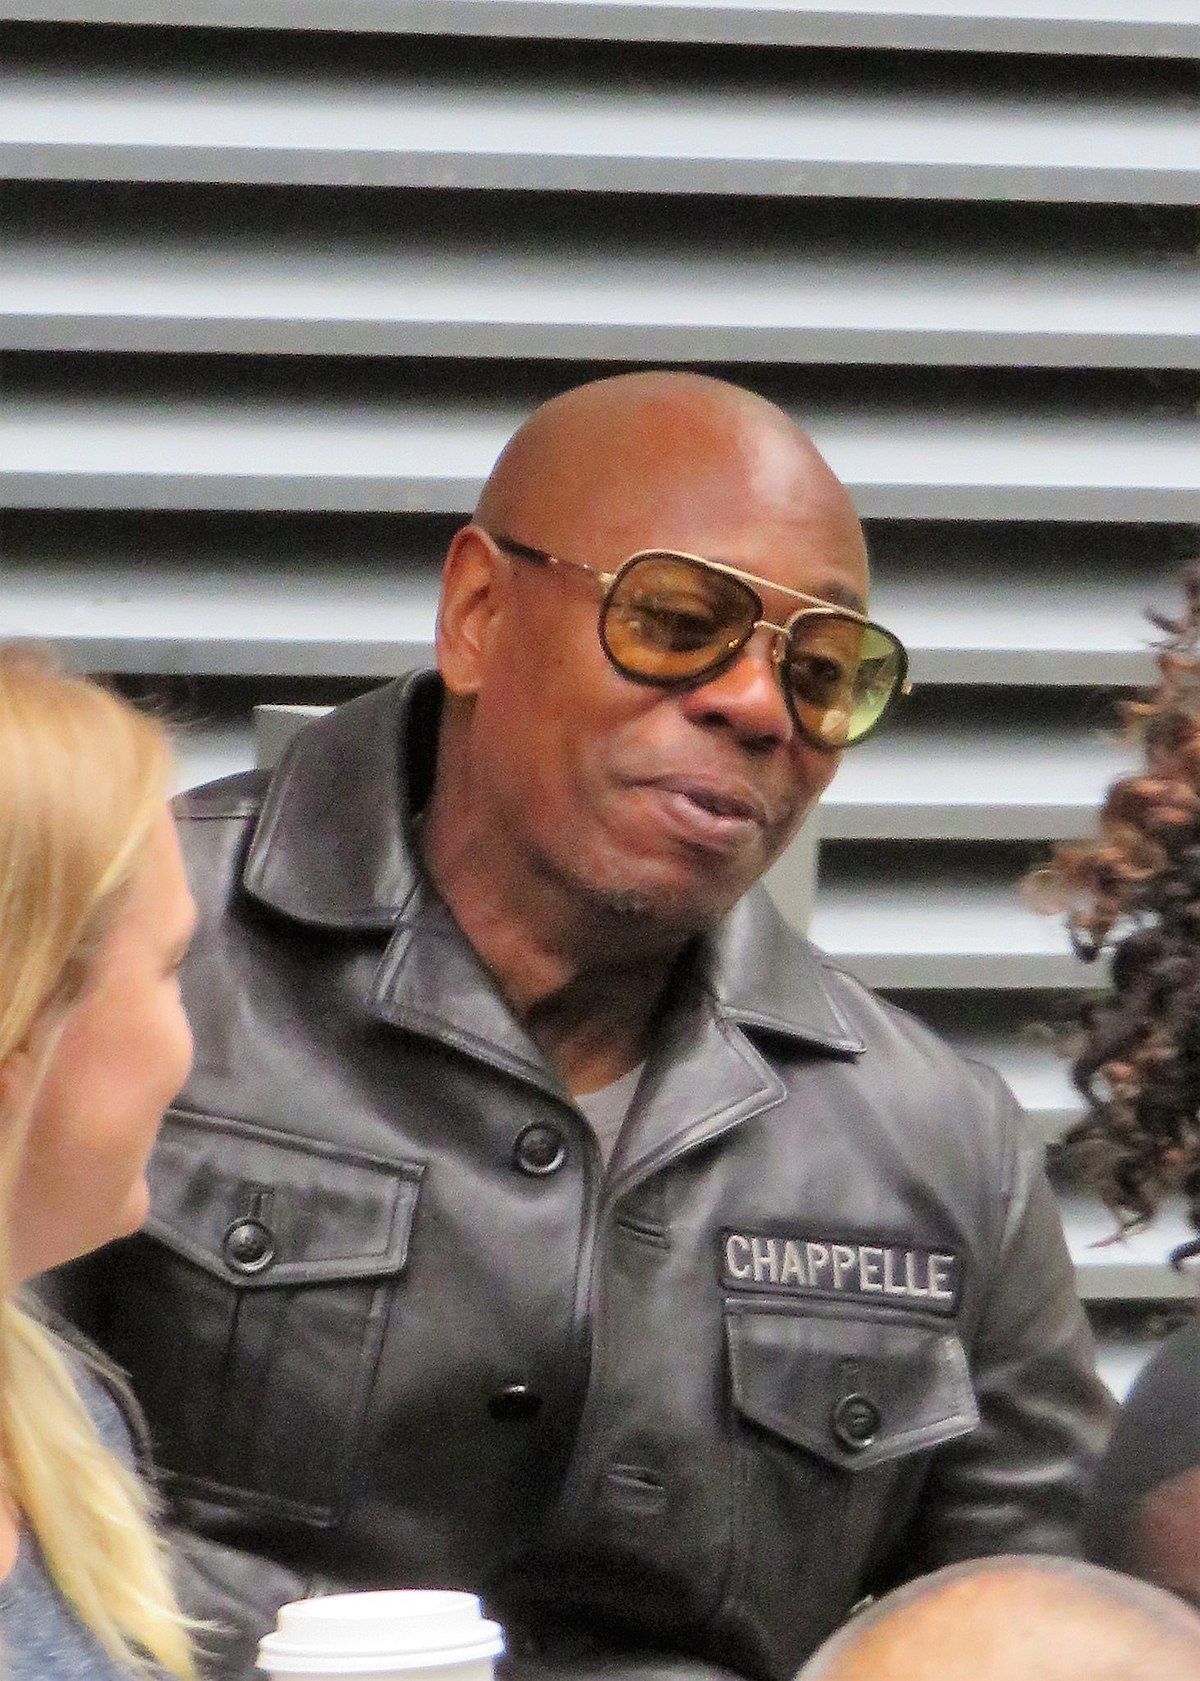 Dave Chappelle - Wikipedia